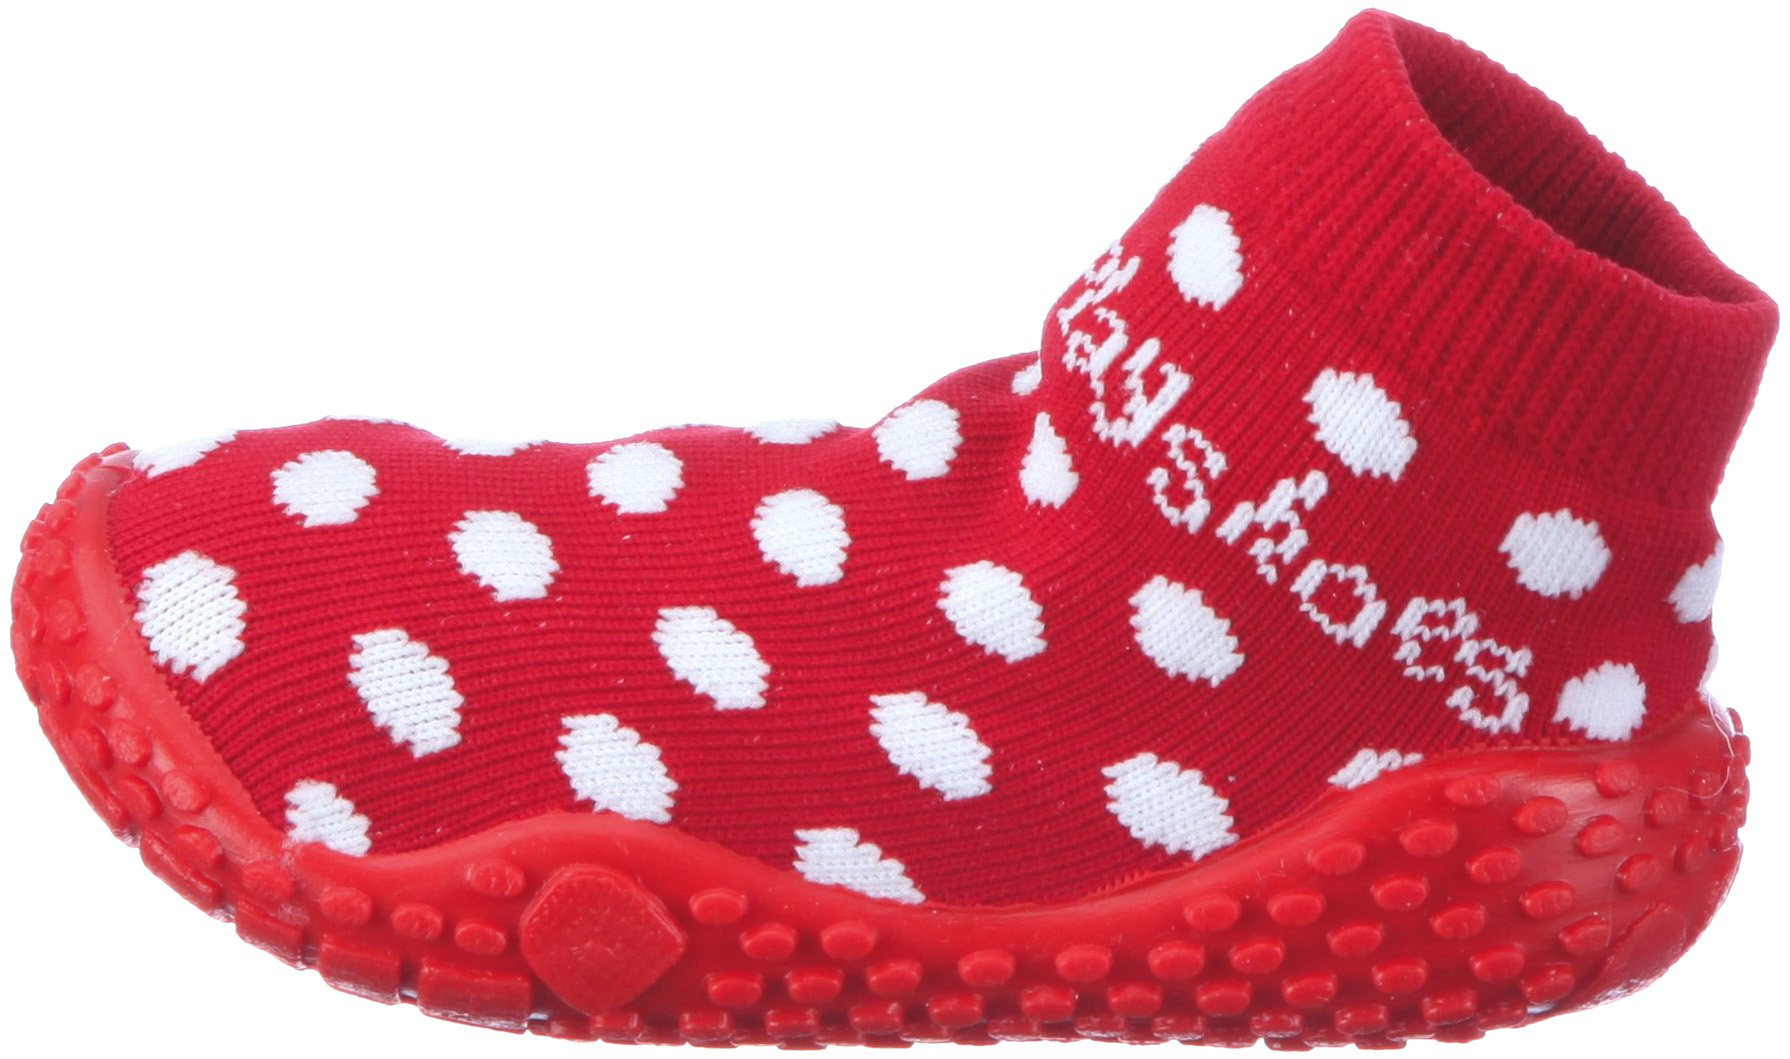 Playshoes Girls Dots Collection Rubber Aqua Swim/Beach Sock Shoes (7 M US Toddler) by Playshoes (Image #5)